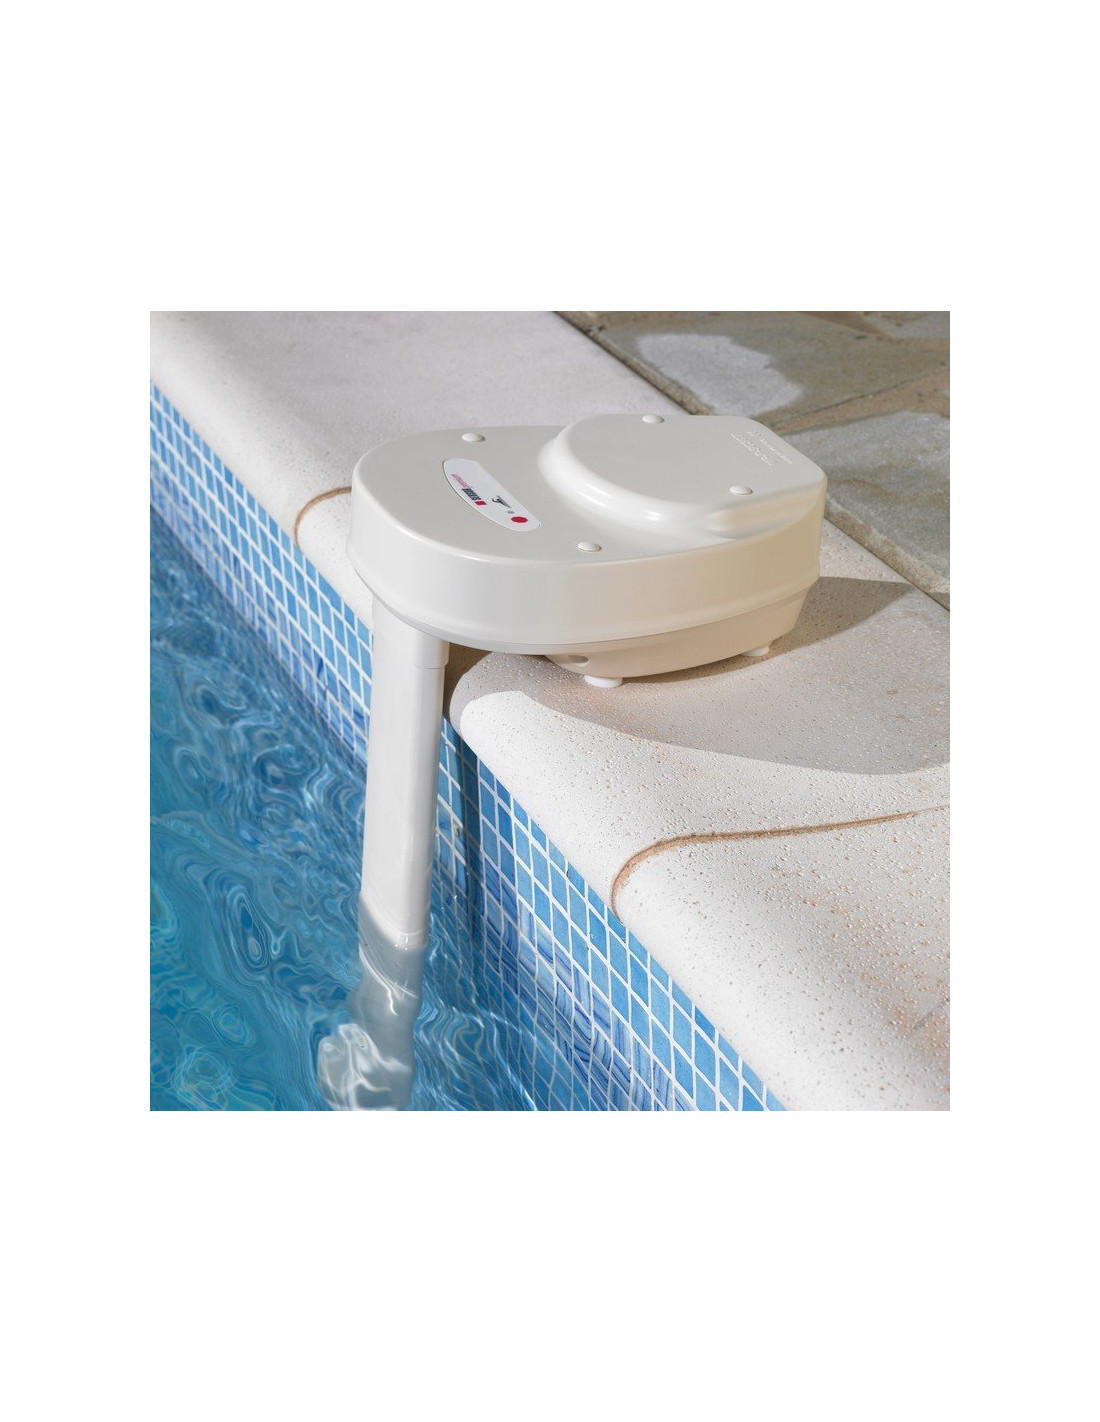 Alarme de piscine aqualarm for Alarme piscine infrarouge